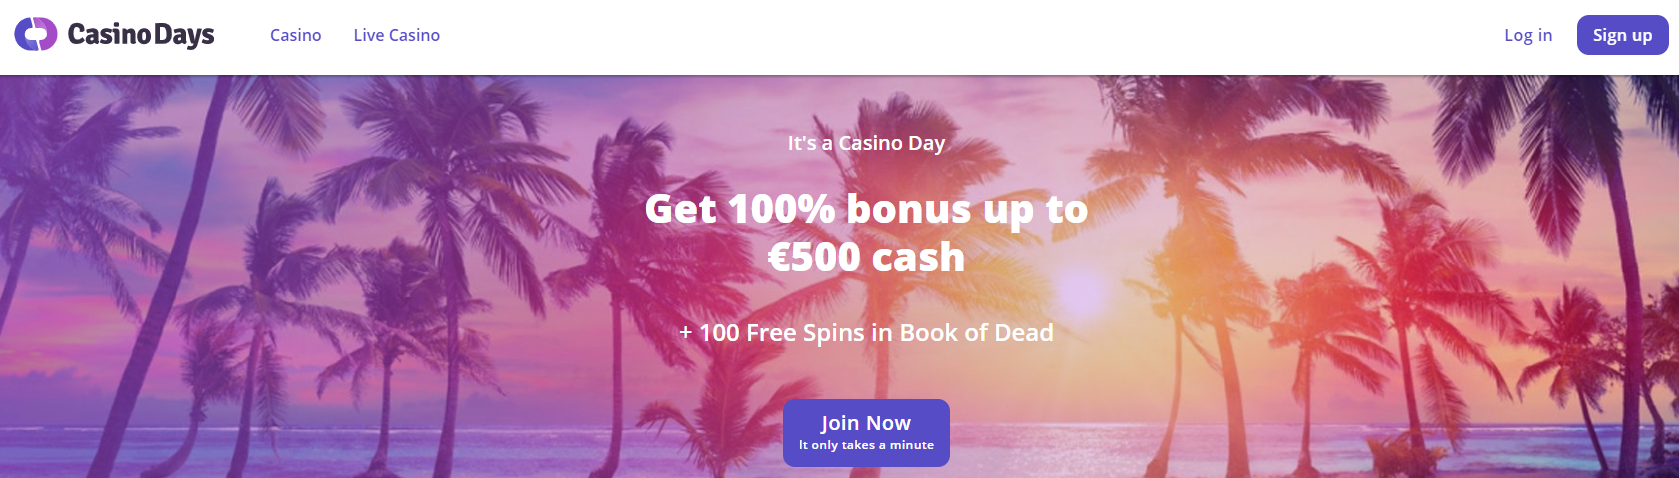 casinodays_bonus